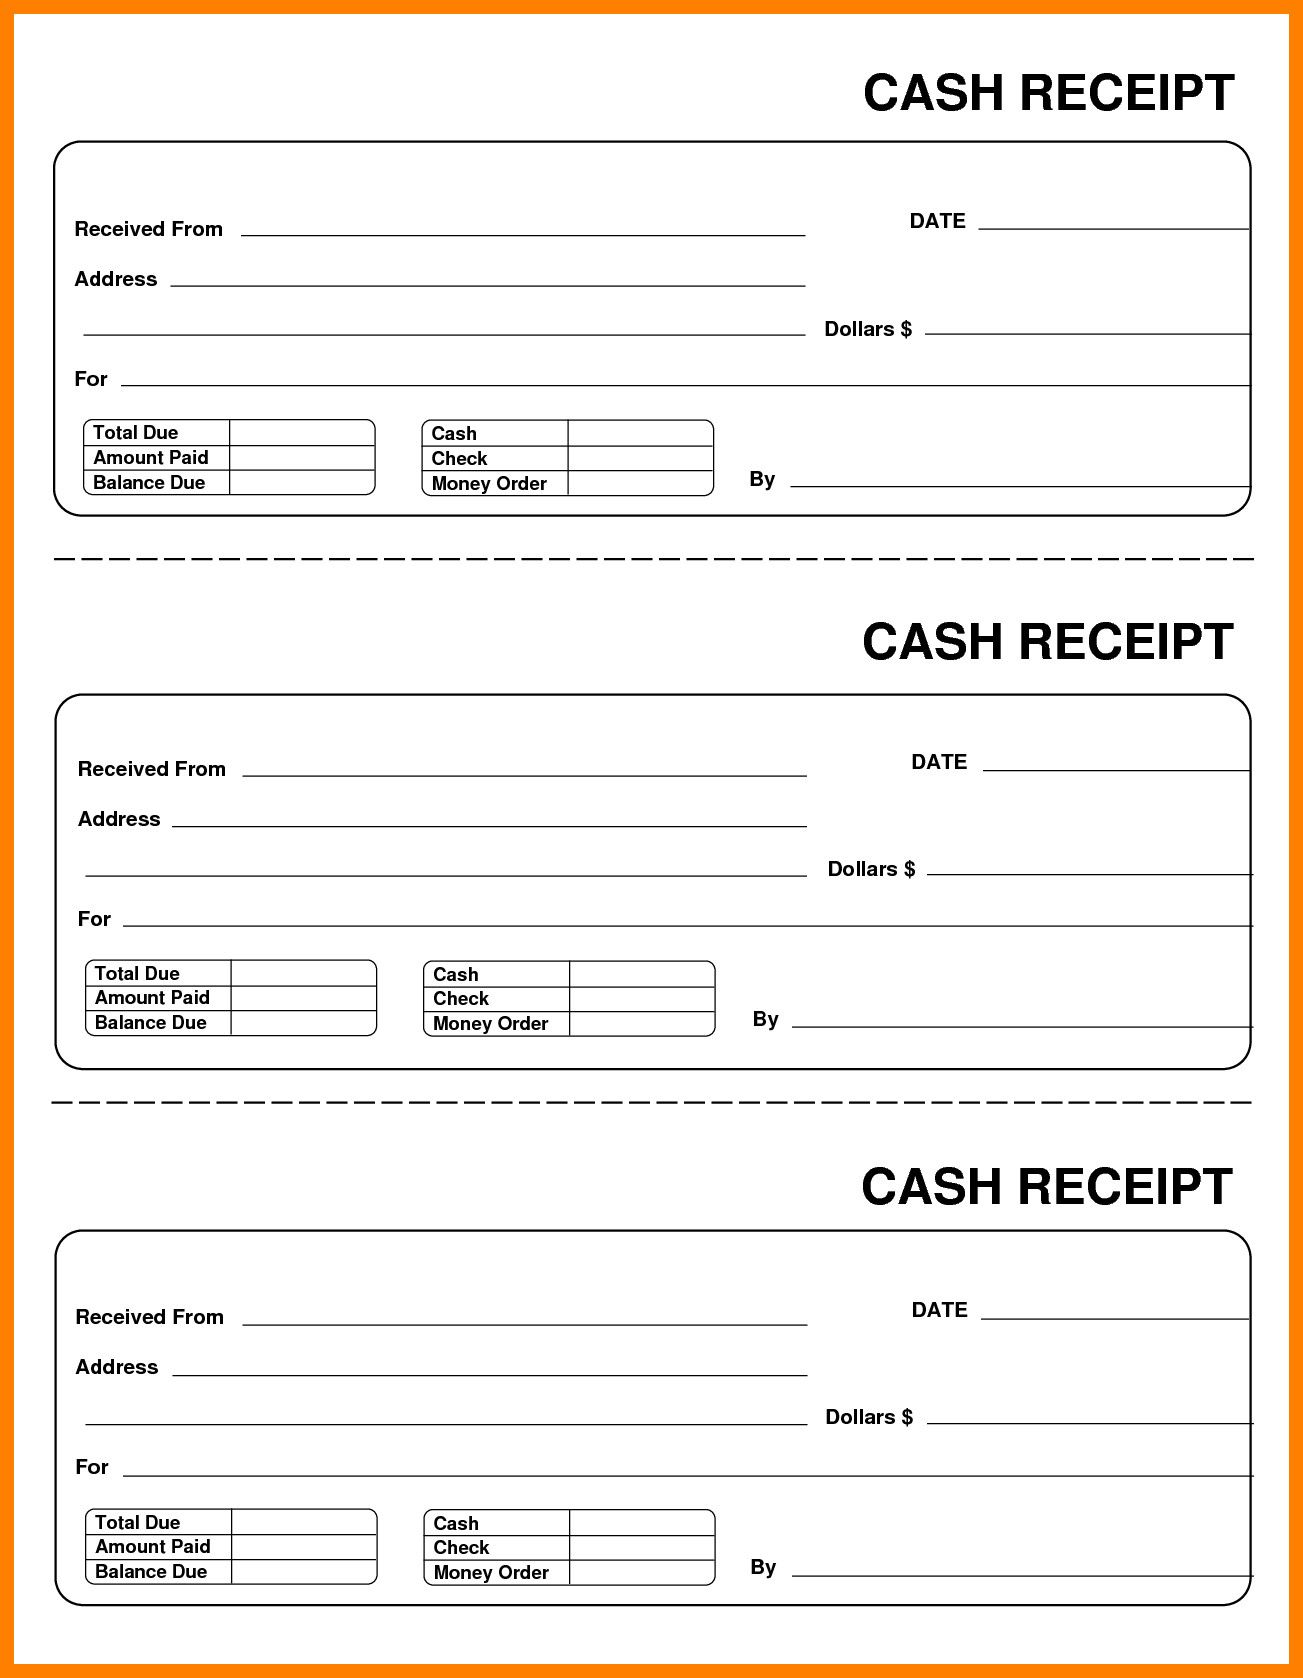 how to fill out a receipt book for cash